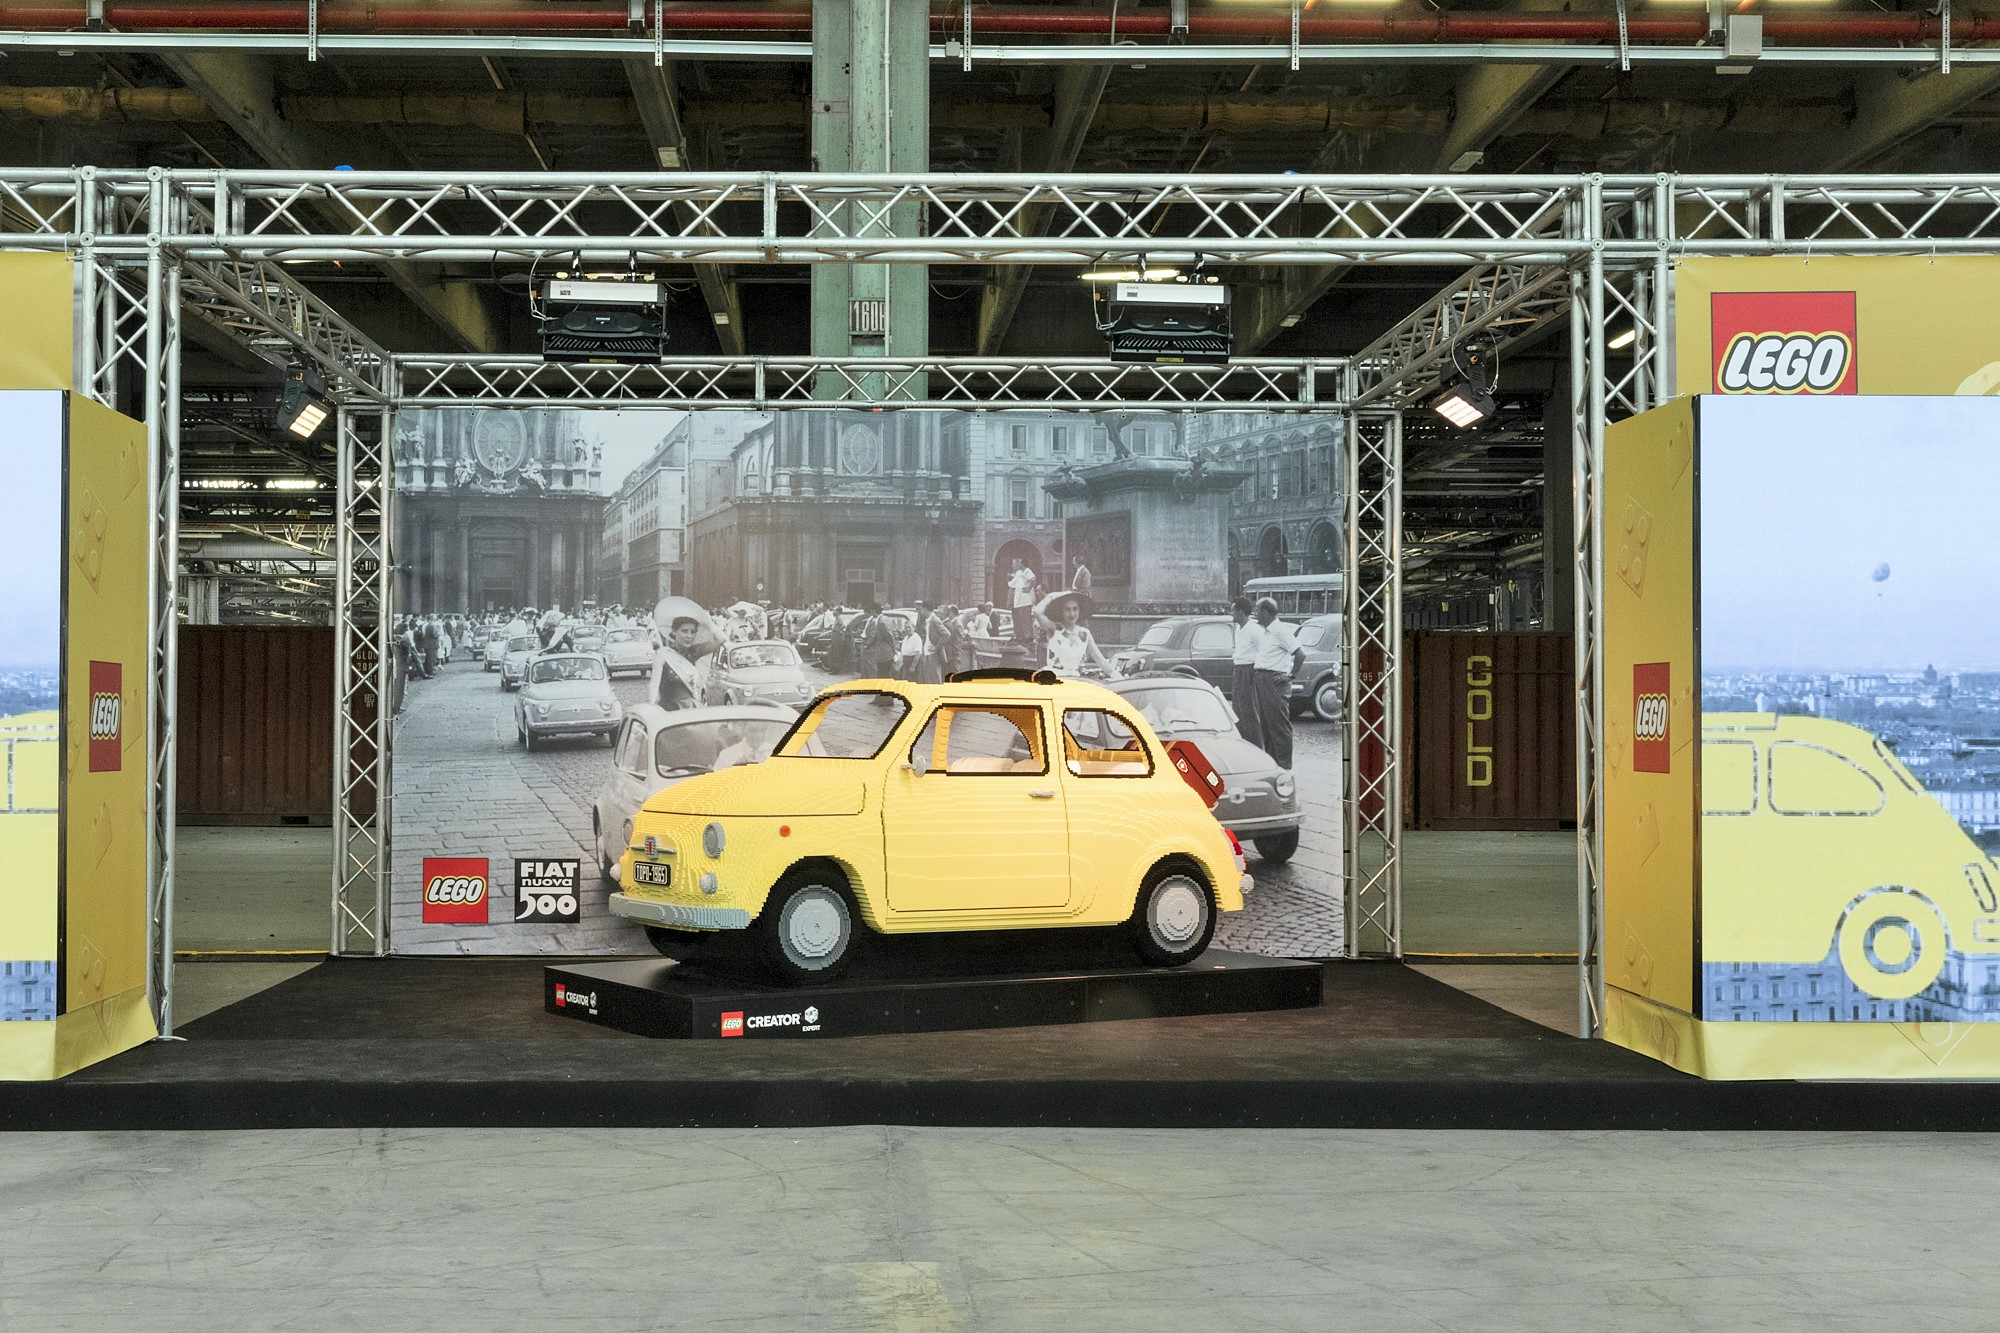 Photo of A bordo di una Fiat 500 fatta di LEGO, l'evento gratuito al Motorvillage di Torino